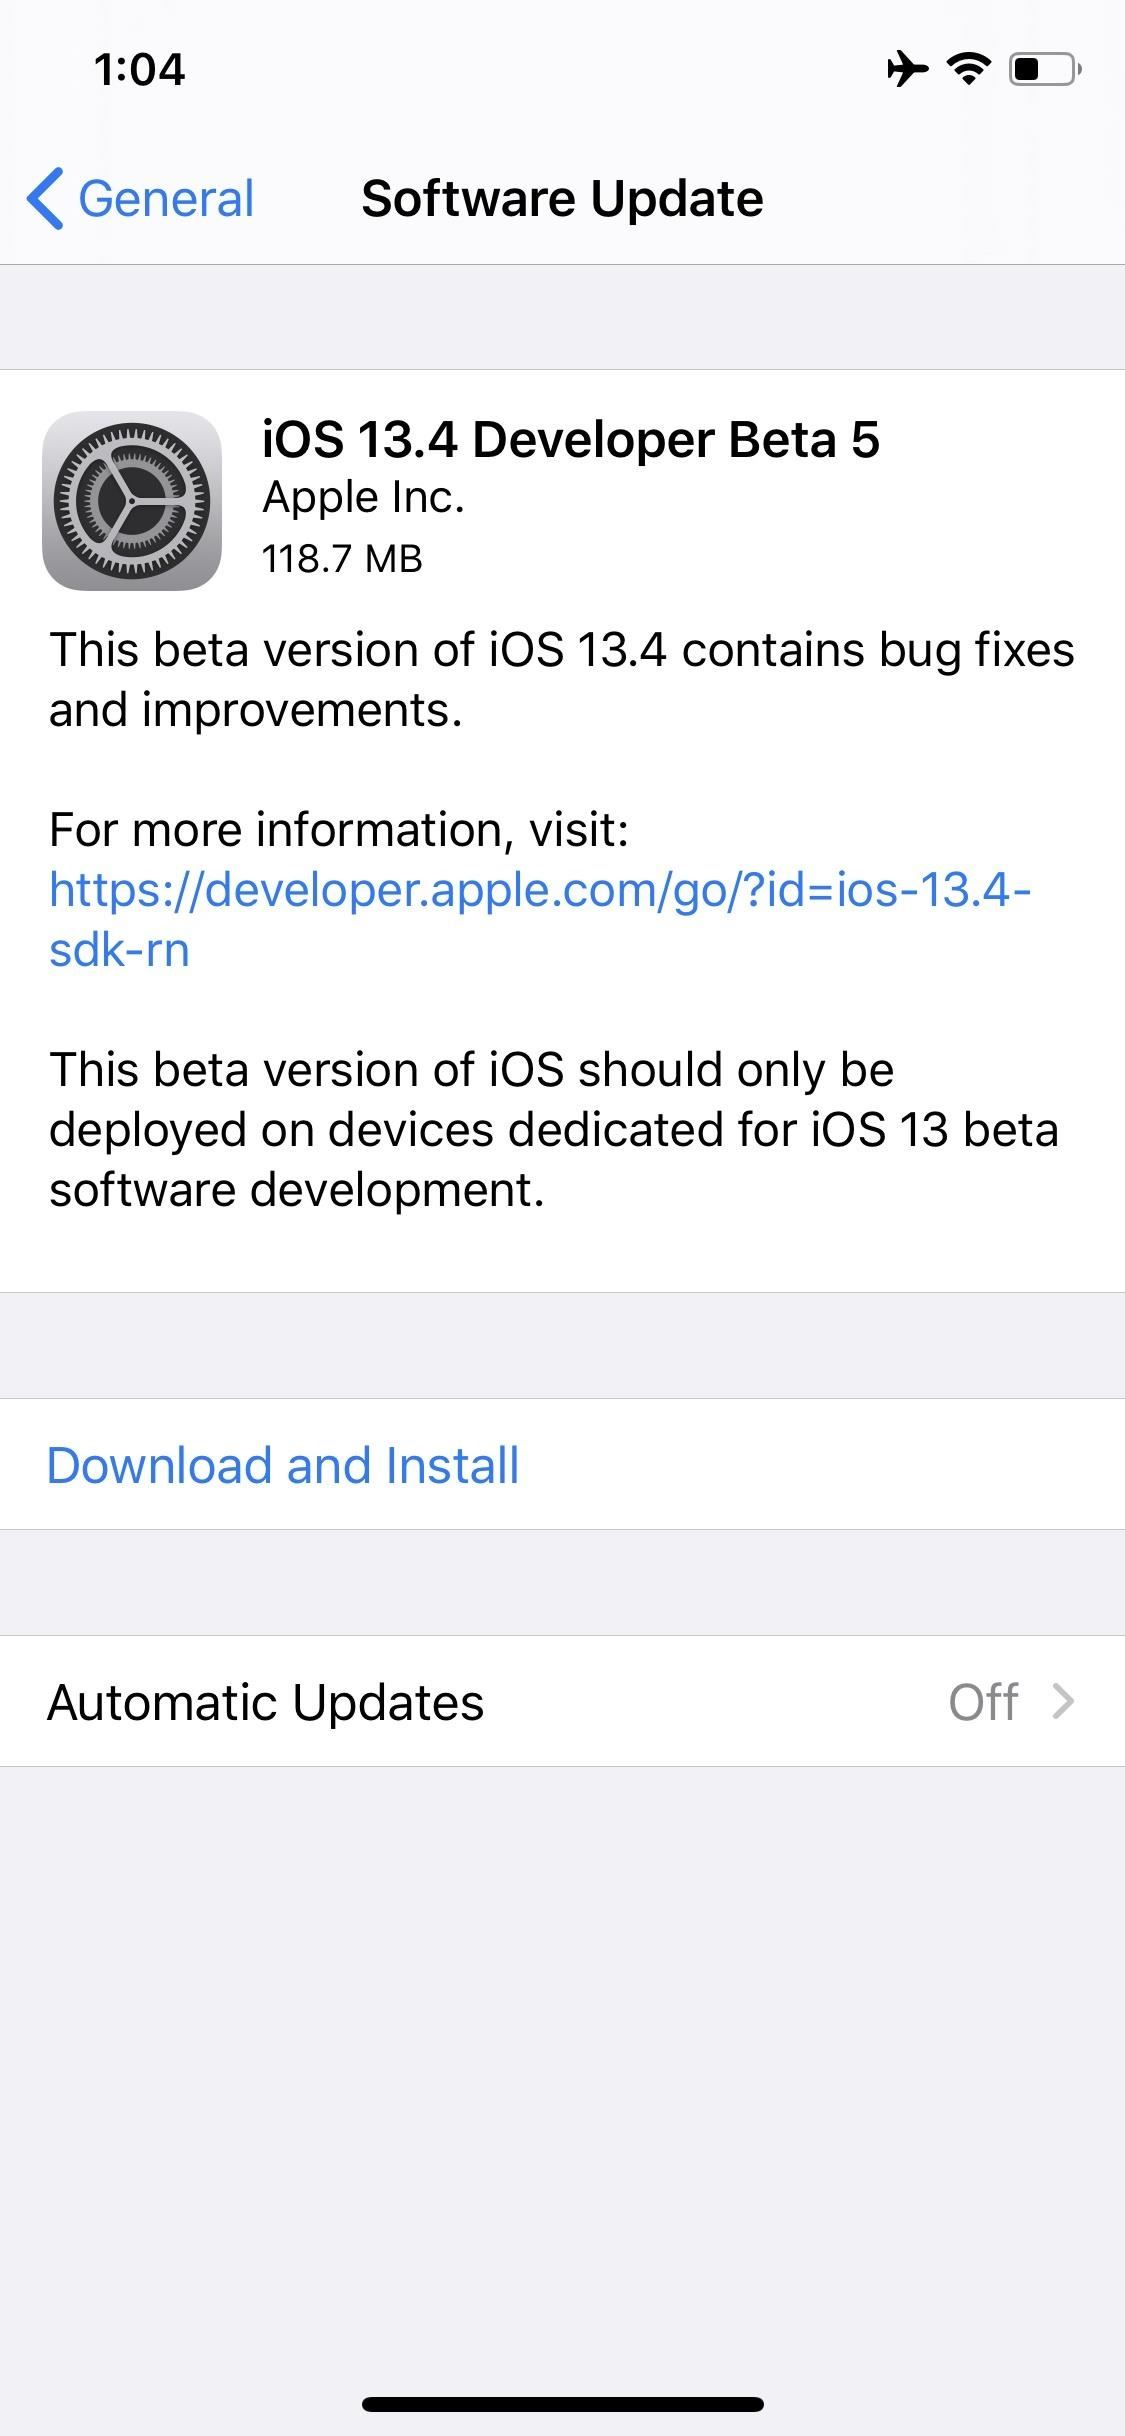 Apple Releases iOS 13.4 Developer Beta 5 for iPhone